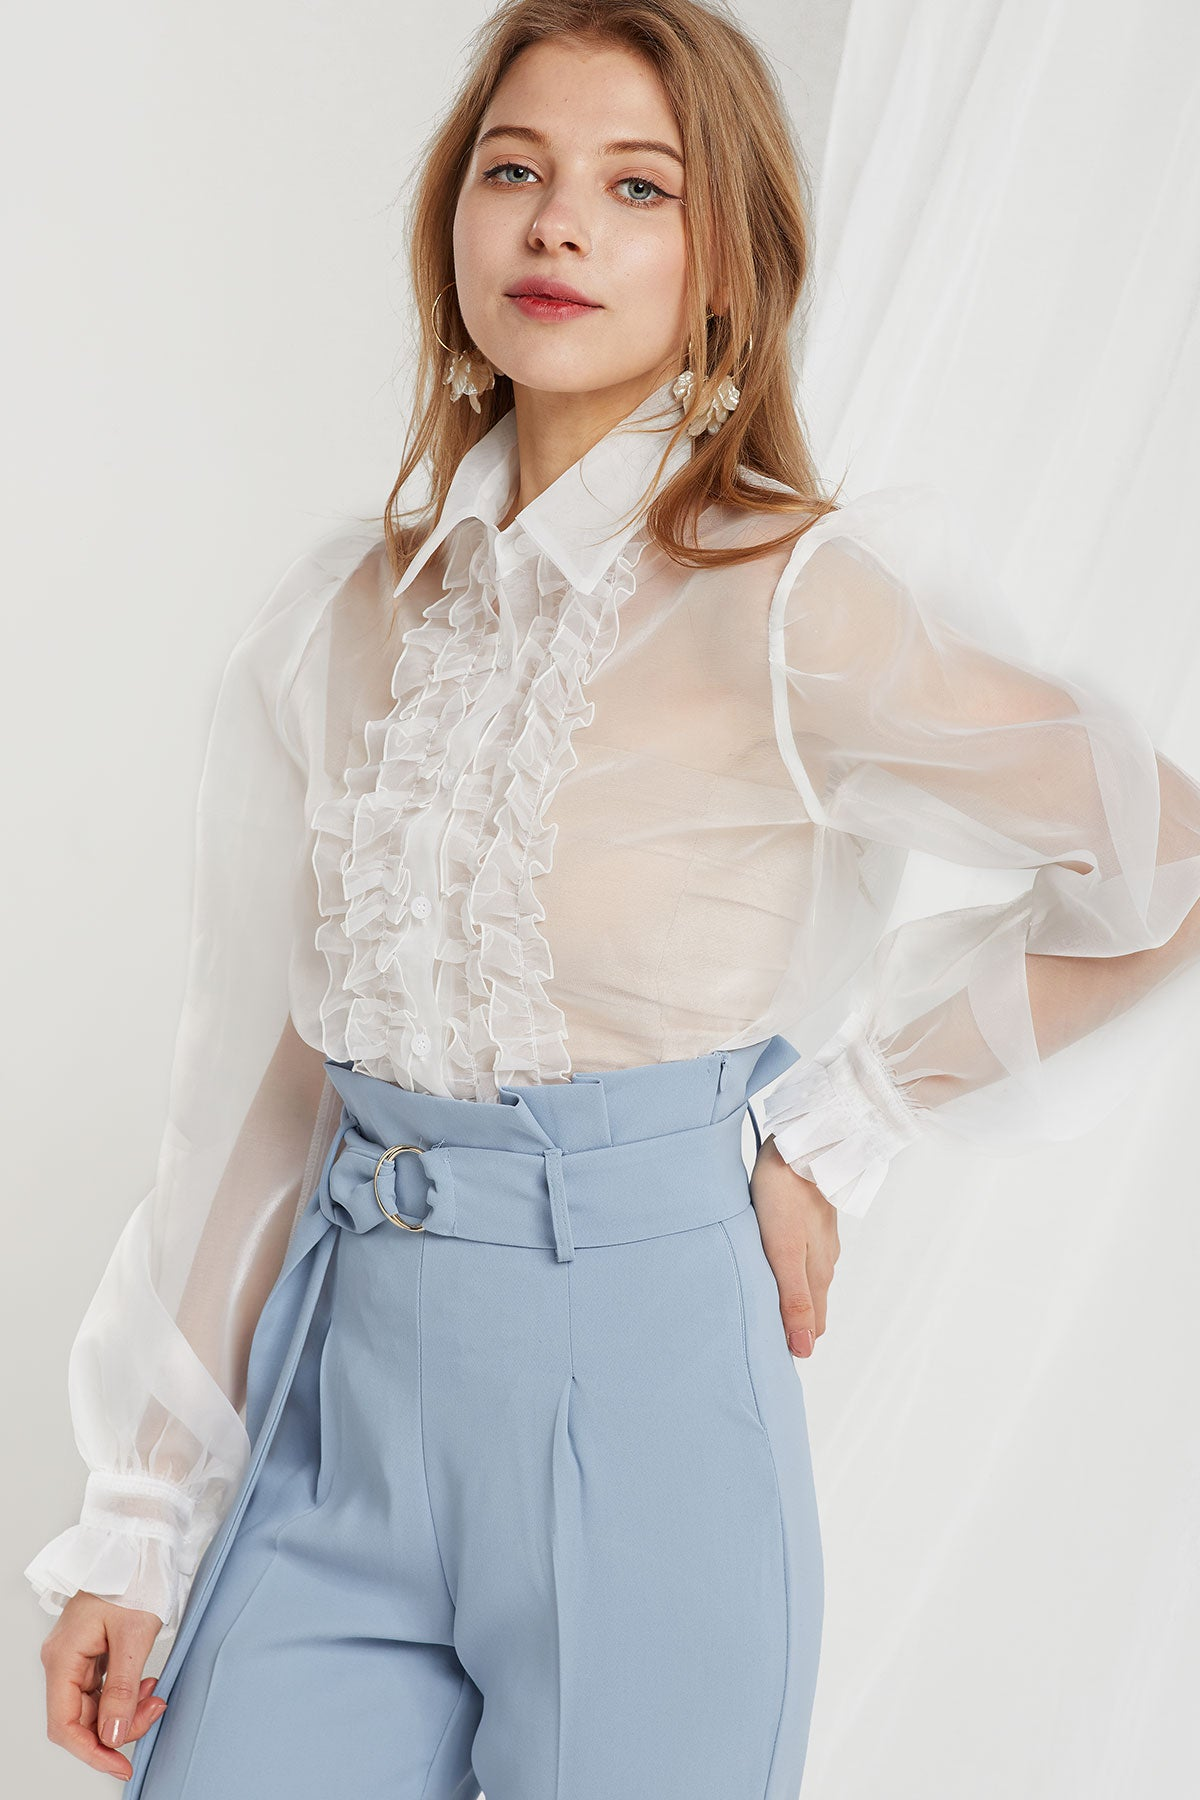 Ophelia Organza Front Frill Blouse-2 Colors (Pre-Order)